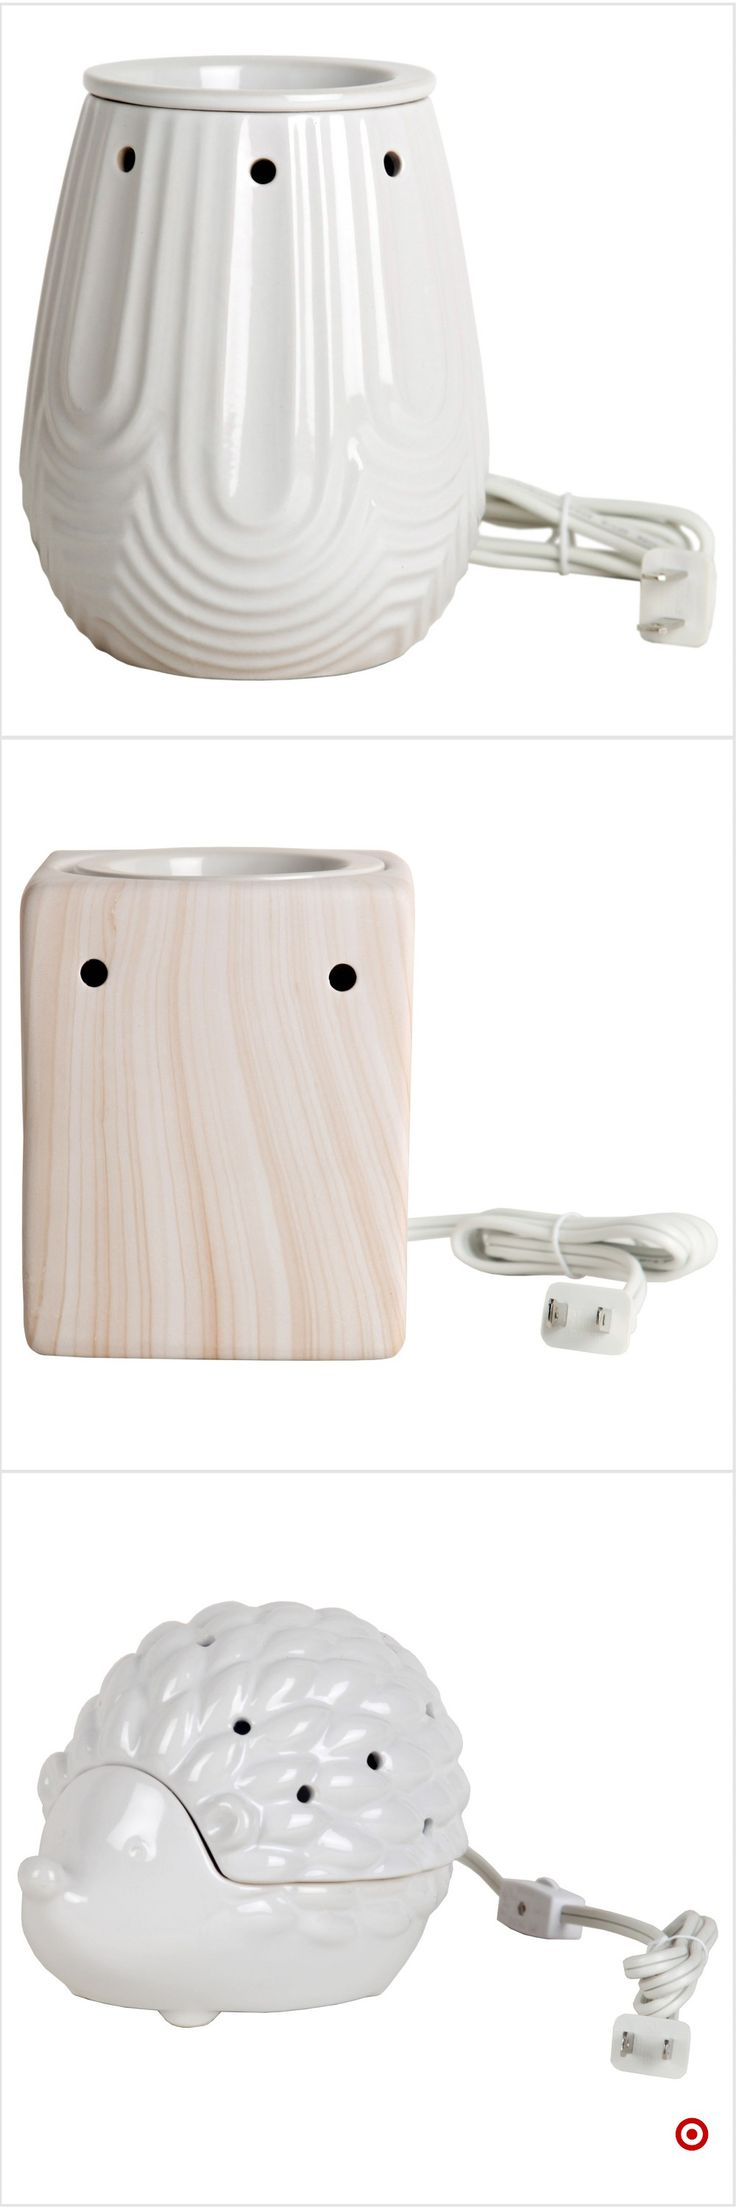 Shop Target for decorative fragrance warmers you will love at great low prices. Free shipping on orders of $35+ or free same-day pick-up in store.